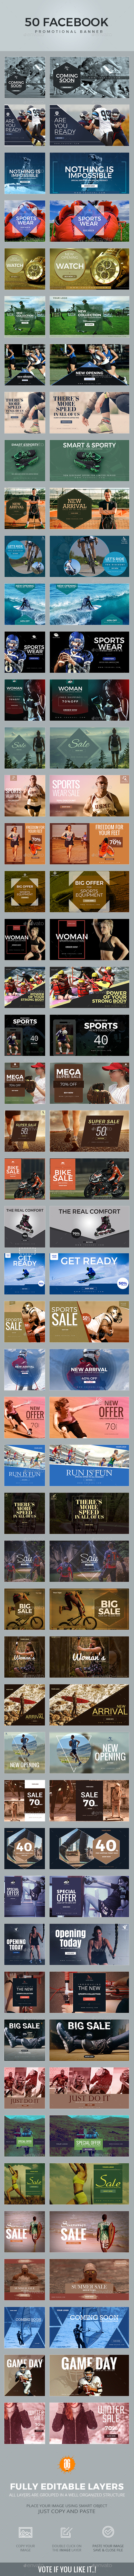 GraphicRiver 100 Sport Facebook Banners 20690440